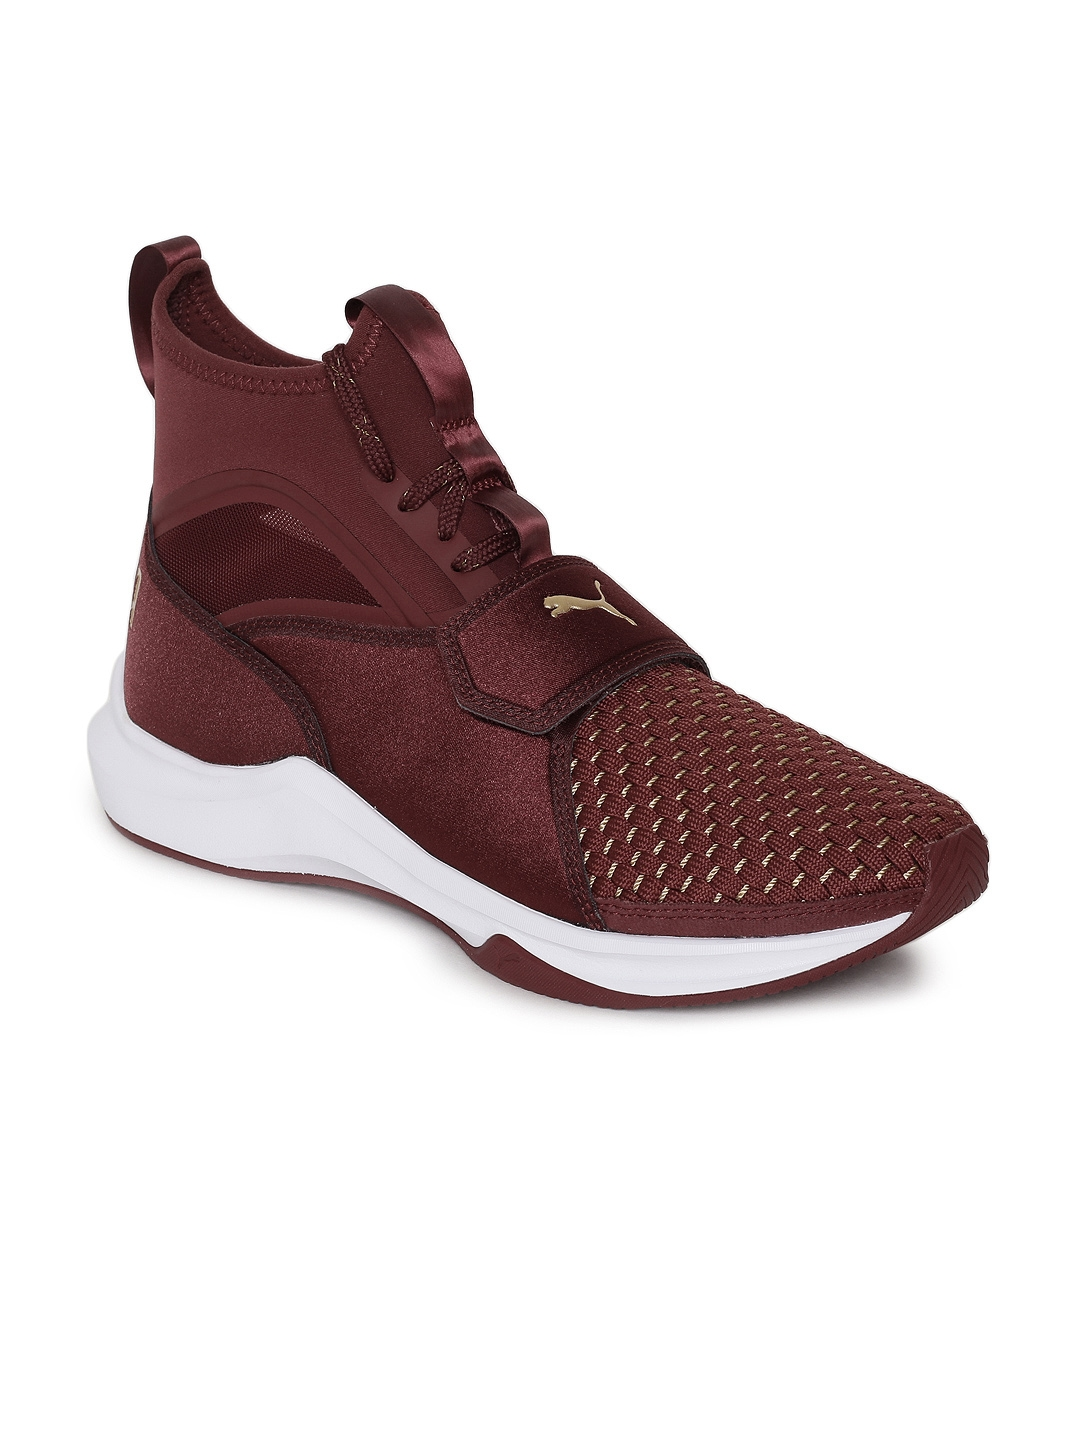 7b21ecf7d7f Buy Puma Women Maroon Phenom Varsity Training Shoes - Sports Shoes ...